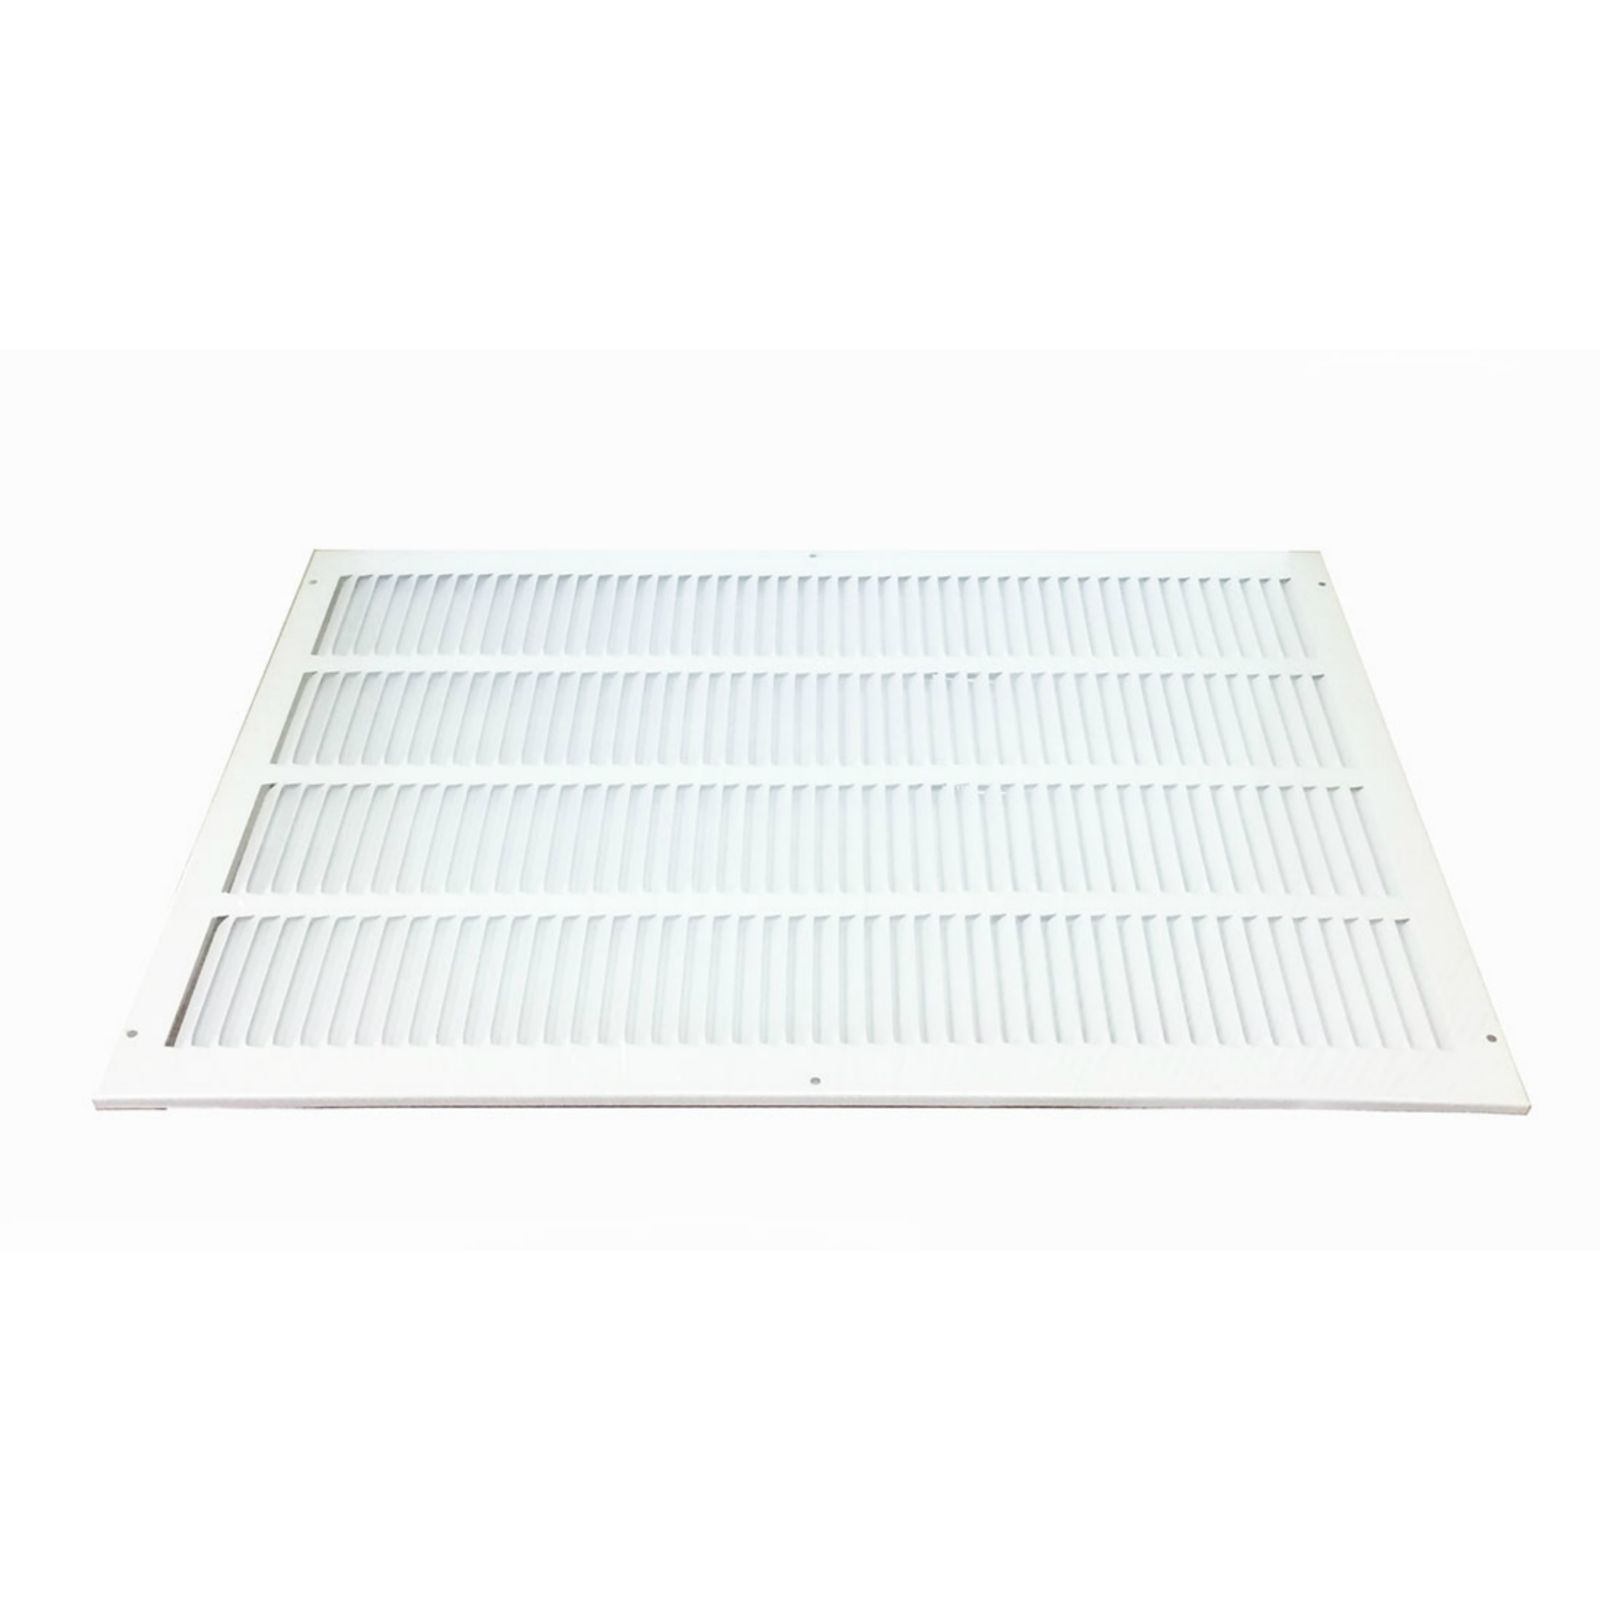 "Grille Tech RAG30X20W - Steel Return Air Grille, 30"" X 20"" White"